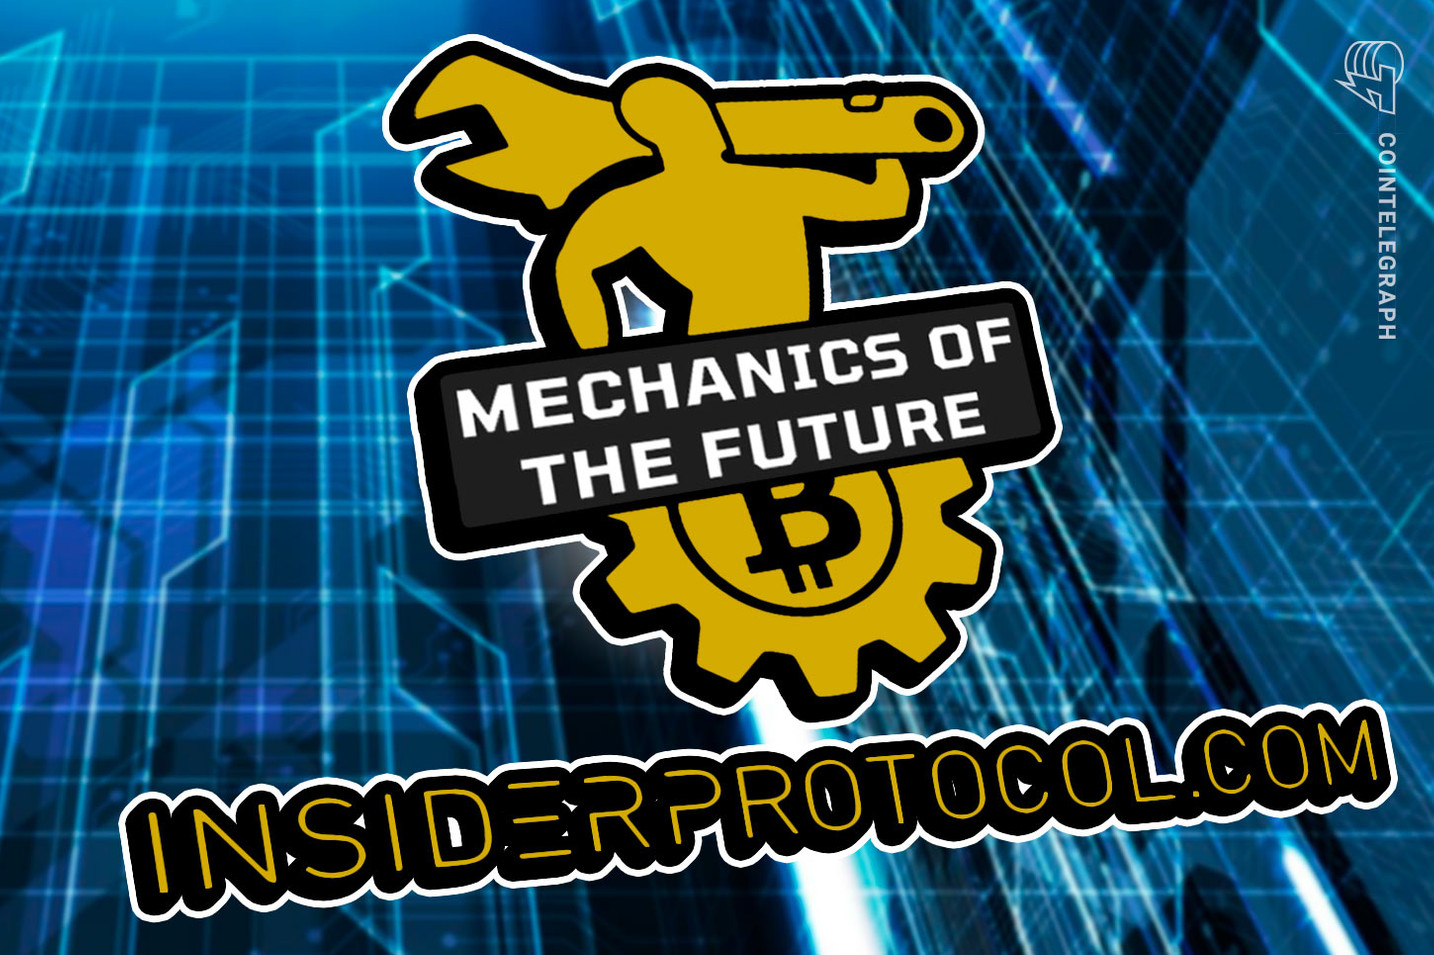 Bitcoin trading bot from Insider Protocol by the Mechanics of the Future